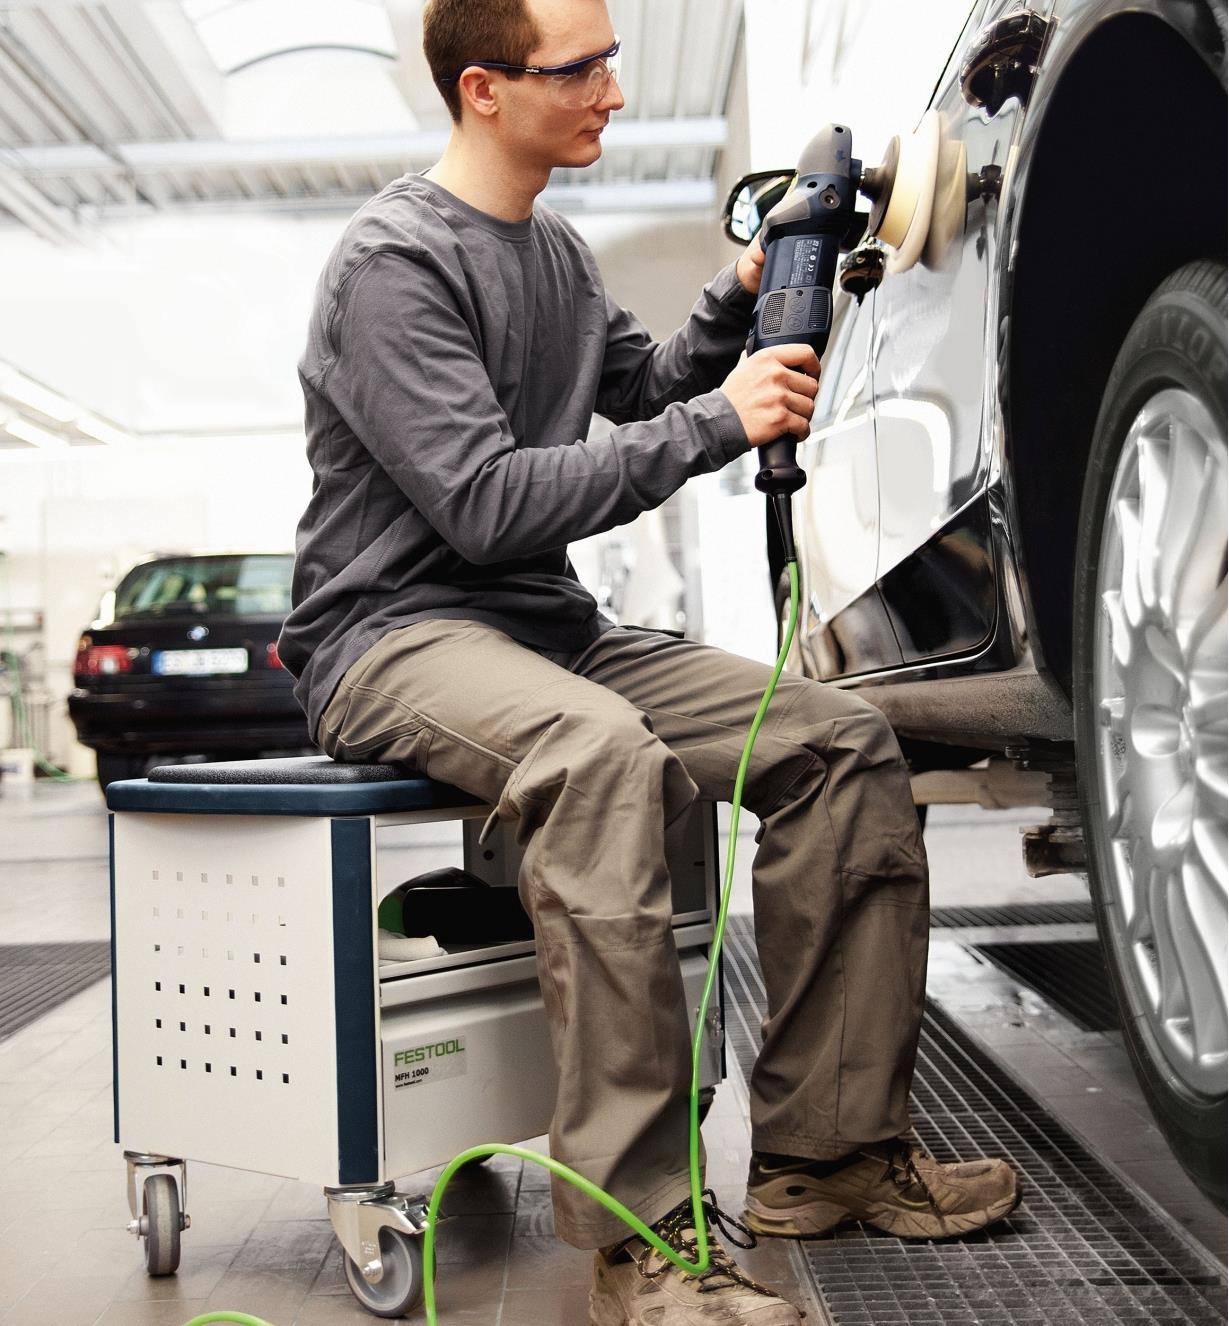 Man sitting on the MMFH 1000 multifunction stool while buffing a car